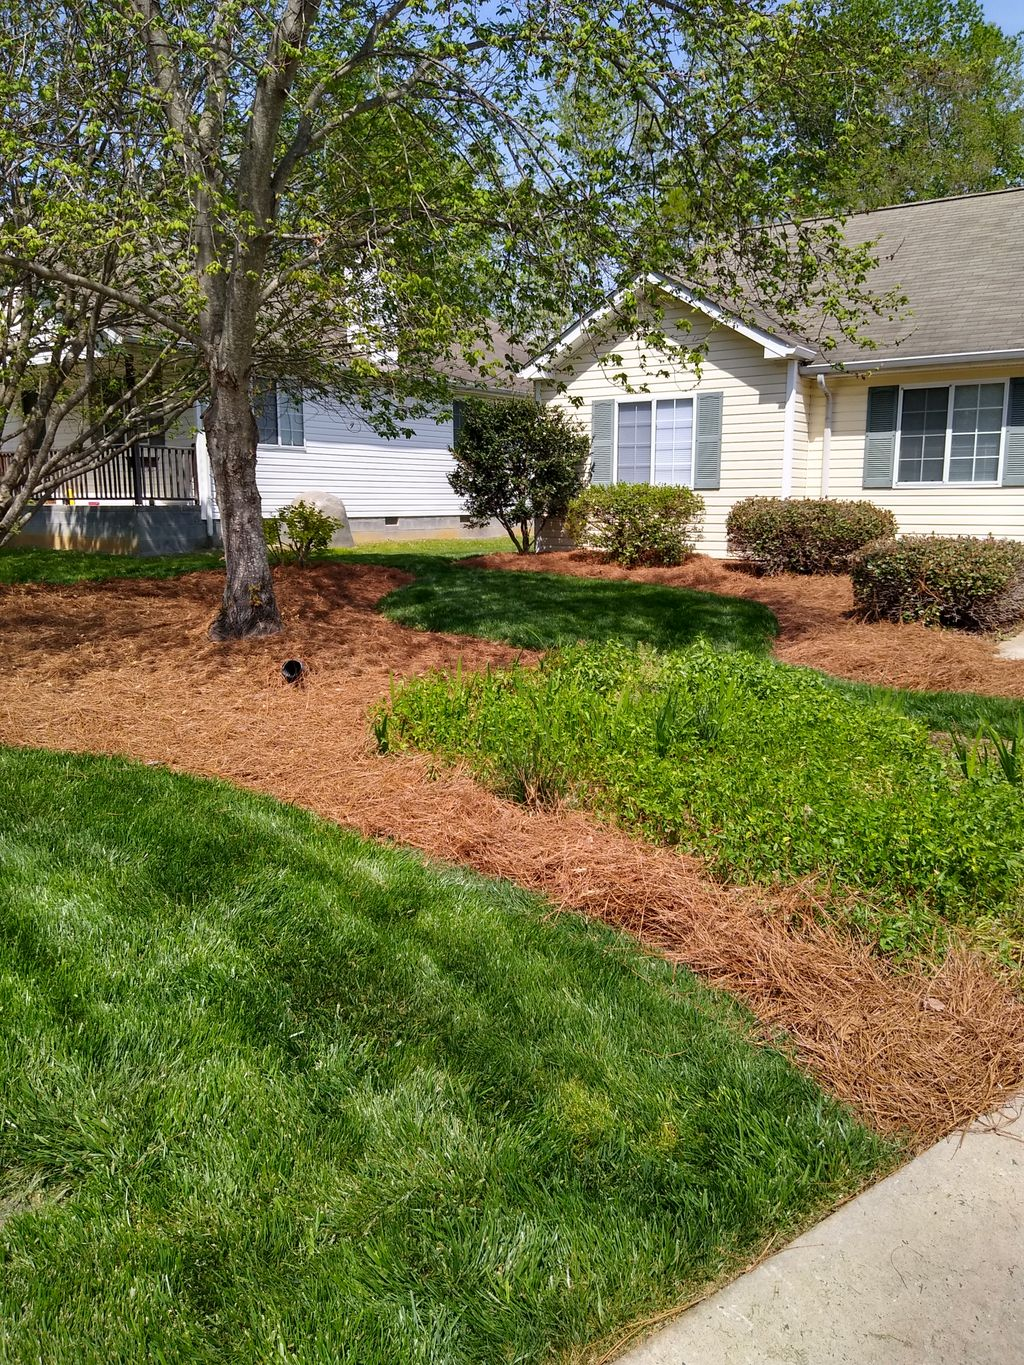 Lawn treatment, mowing, and mulch